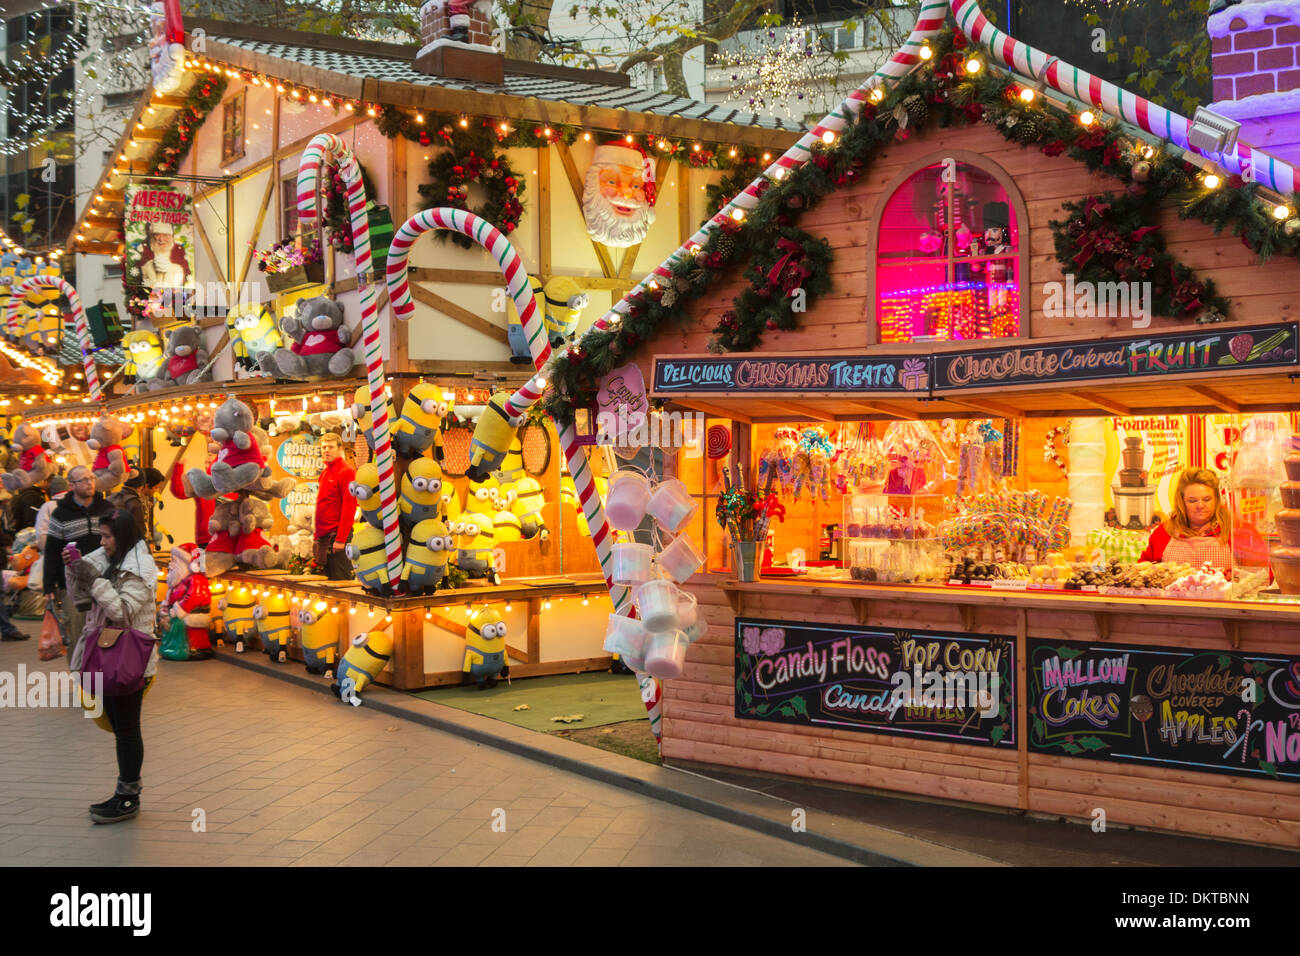 Christmas market stalls in Leicester Square, London, England - Stock Image